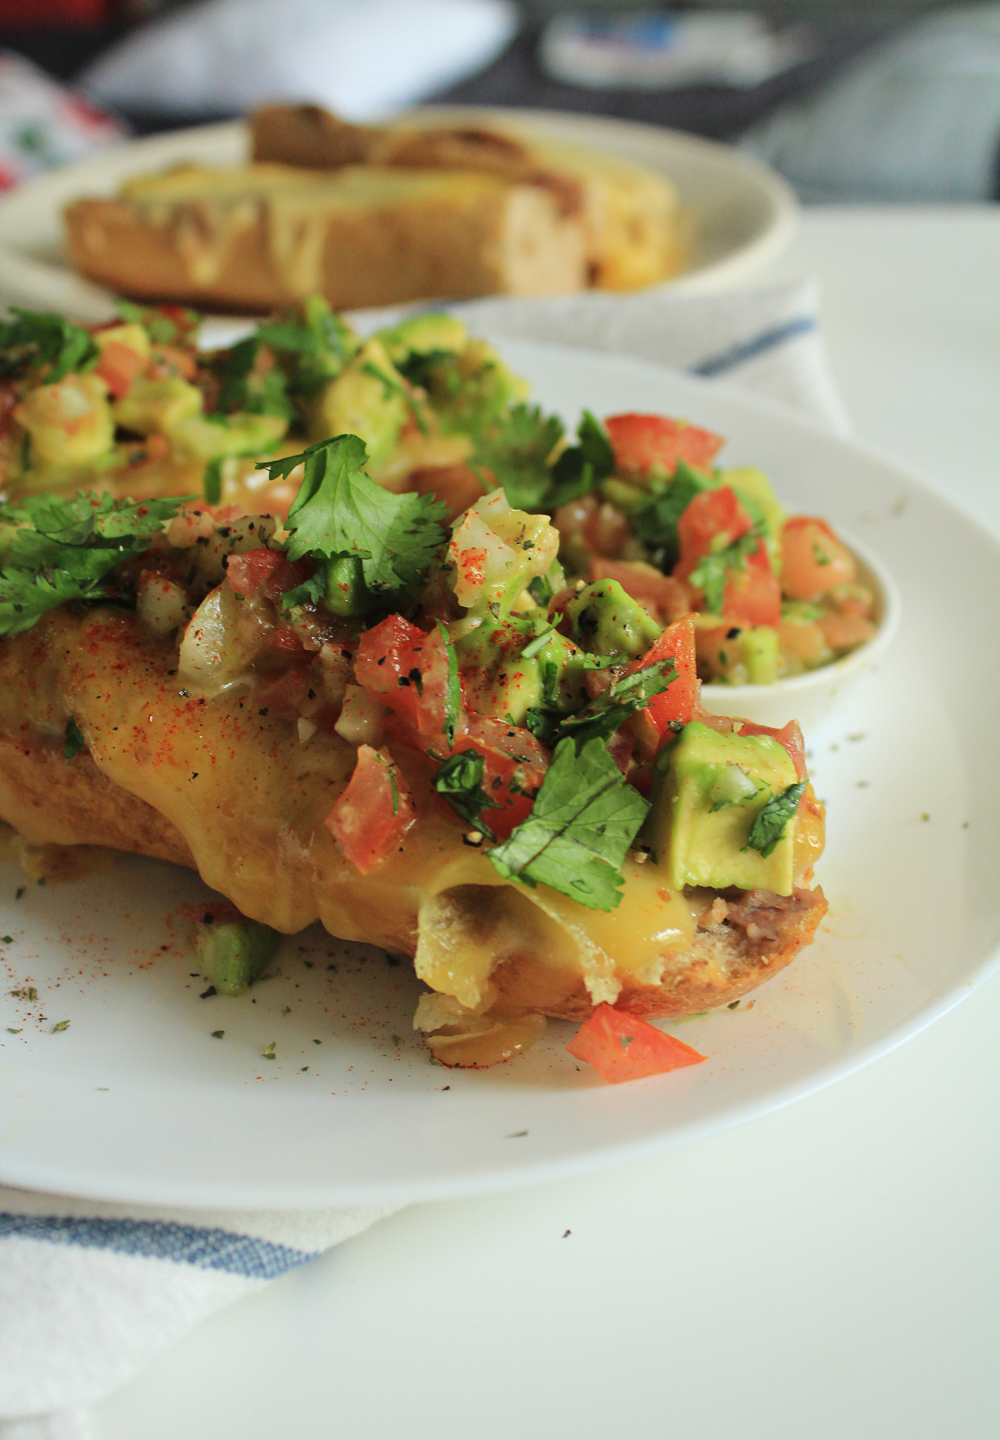 Molletes: bruschettas alla Mexico with melted cheese, avocado, tomato and lots of coriander | by IN WHIRL OF INSPIRATION